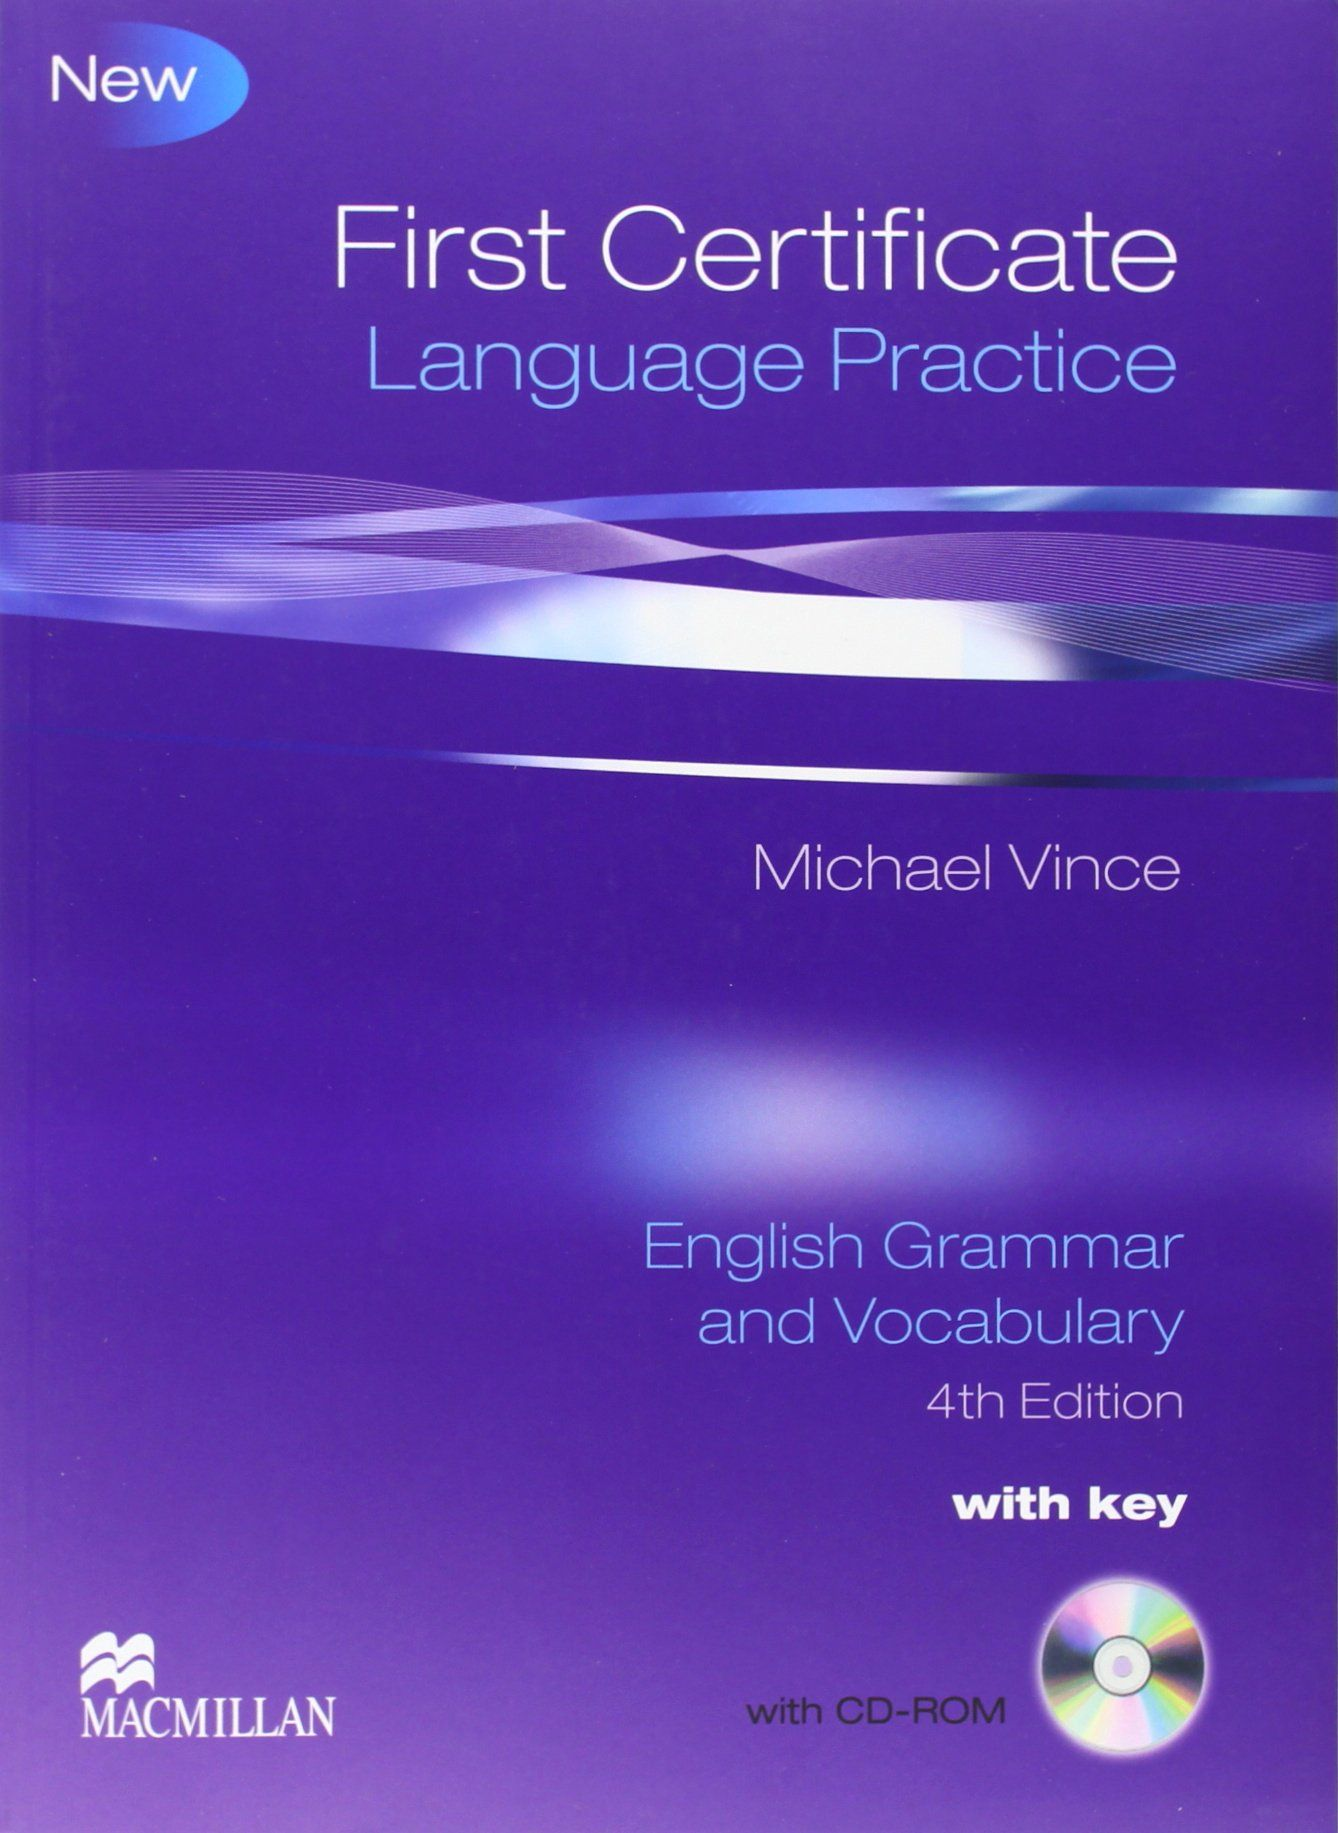 First Certificate Language Practice Student S Book With Key 4th Edition 2009 Sách Gáy Ngữ Pháp Tiếng Anh Từ Vựng Ngữ Pháp